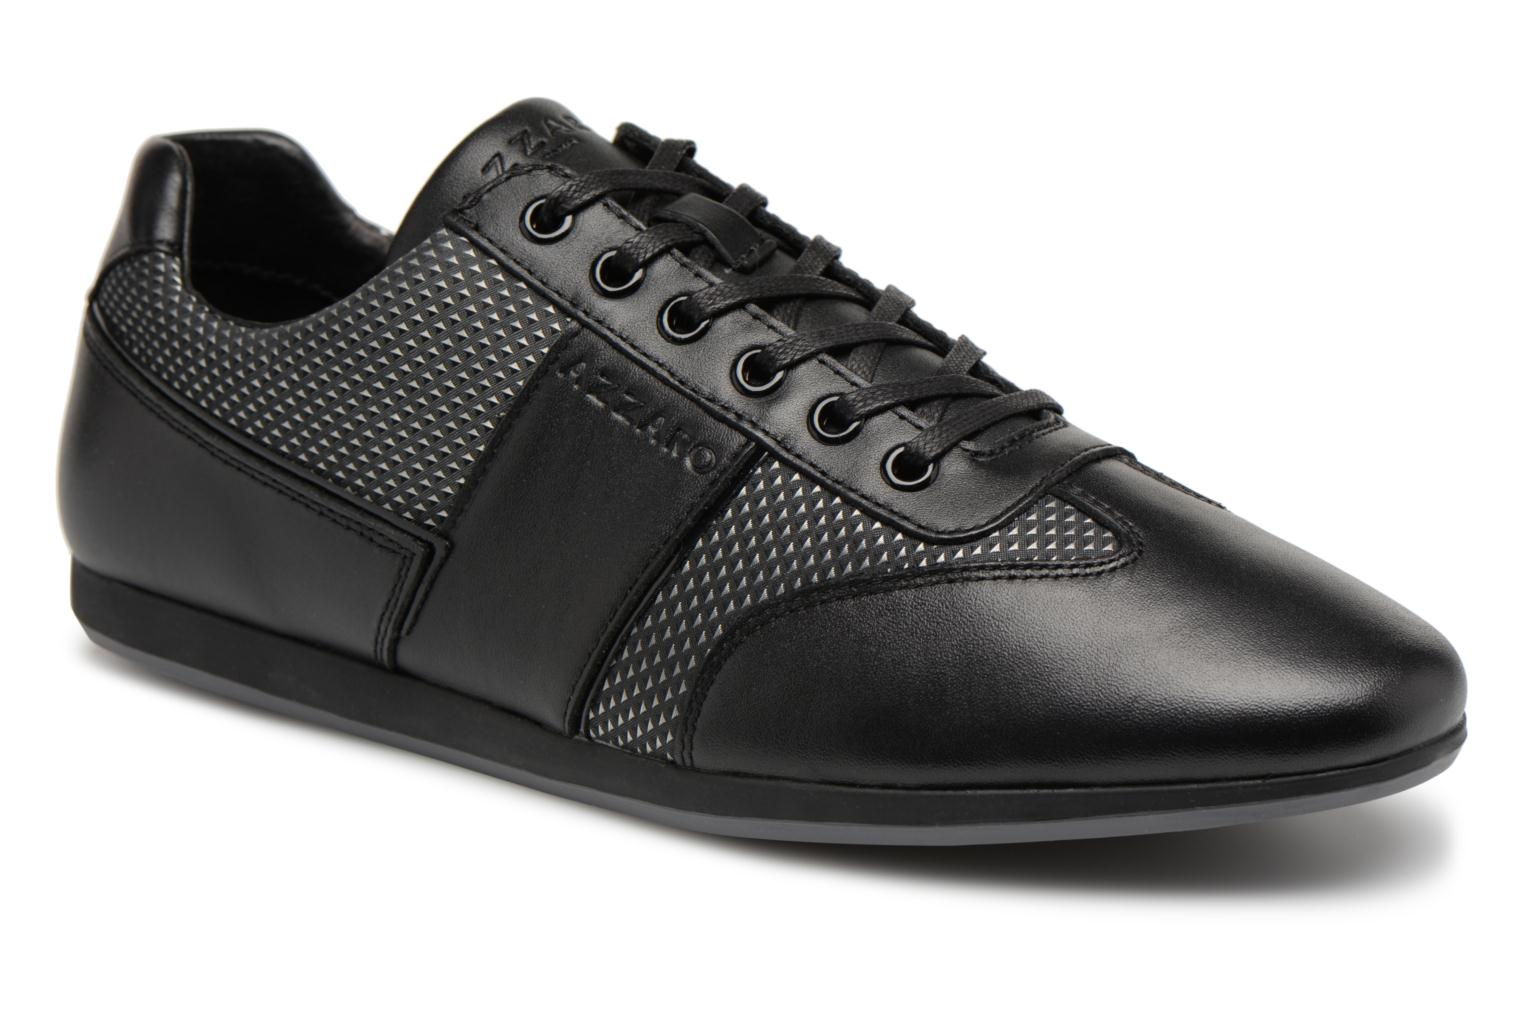 Marques Chaussure luxe homme Azzaro homme PATCH NOIR ARGENT OR